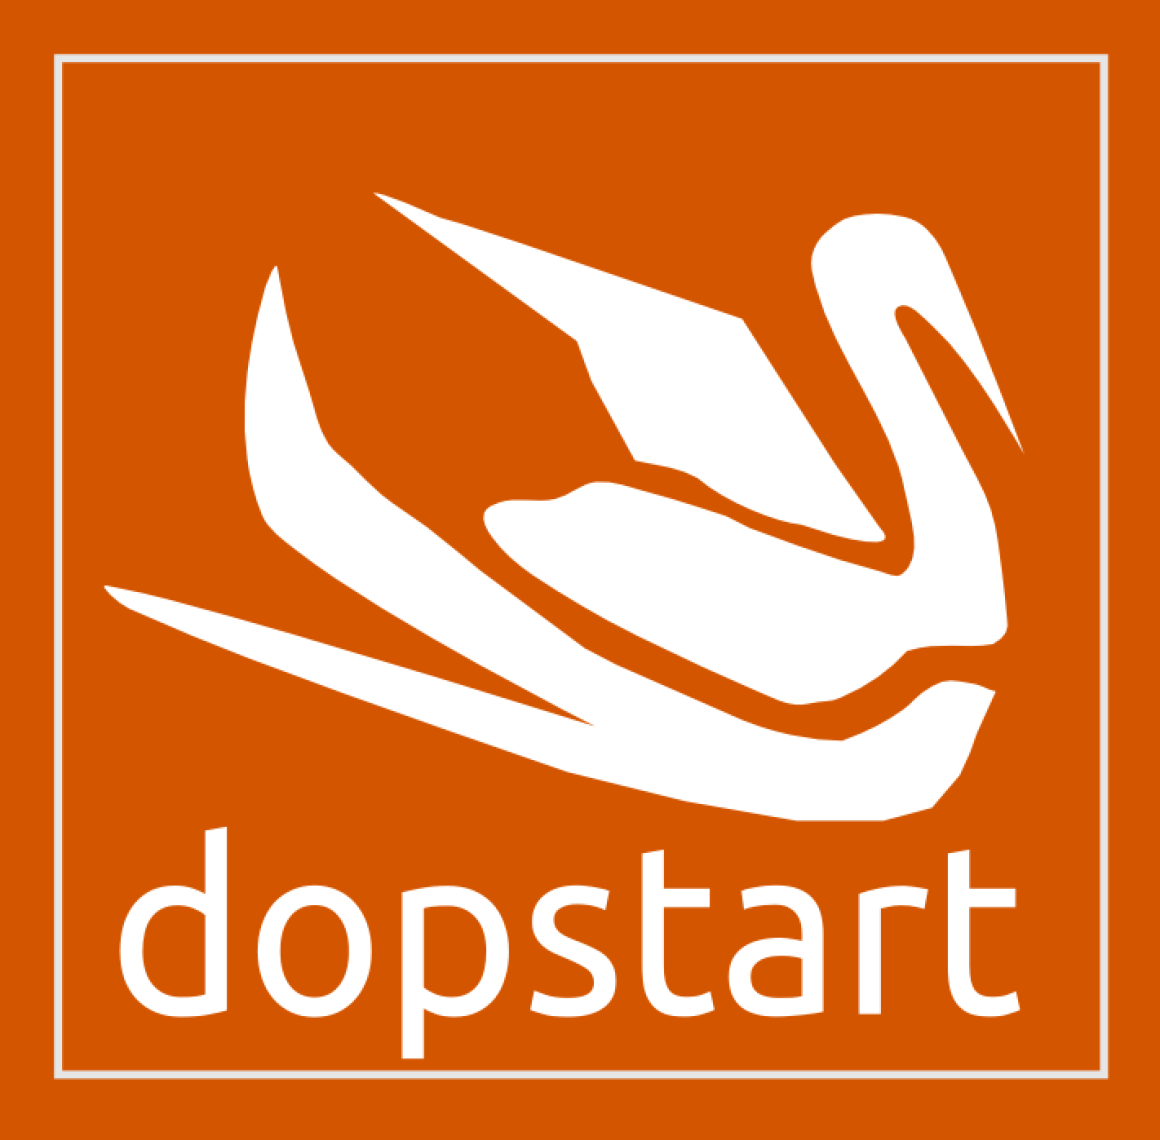 Dopstart web marketing e siti web Logo